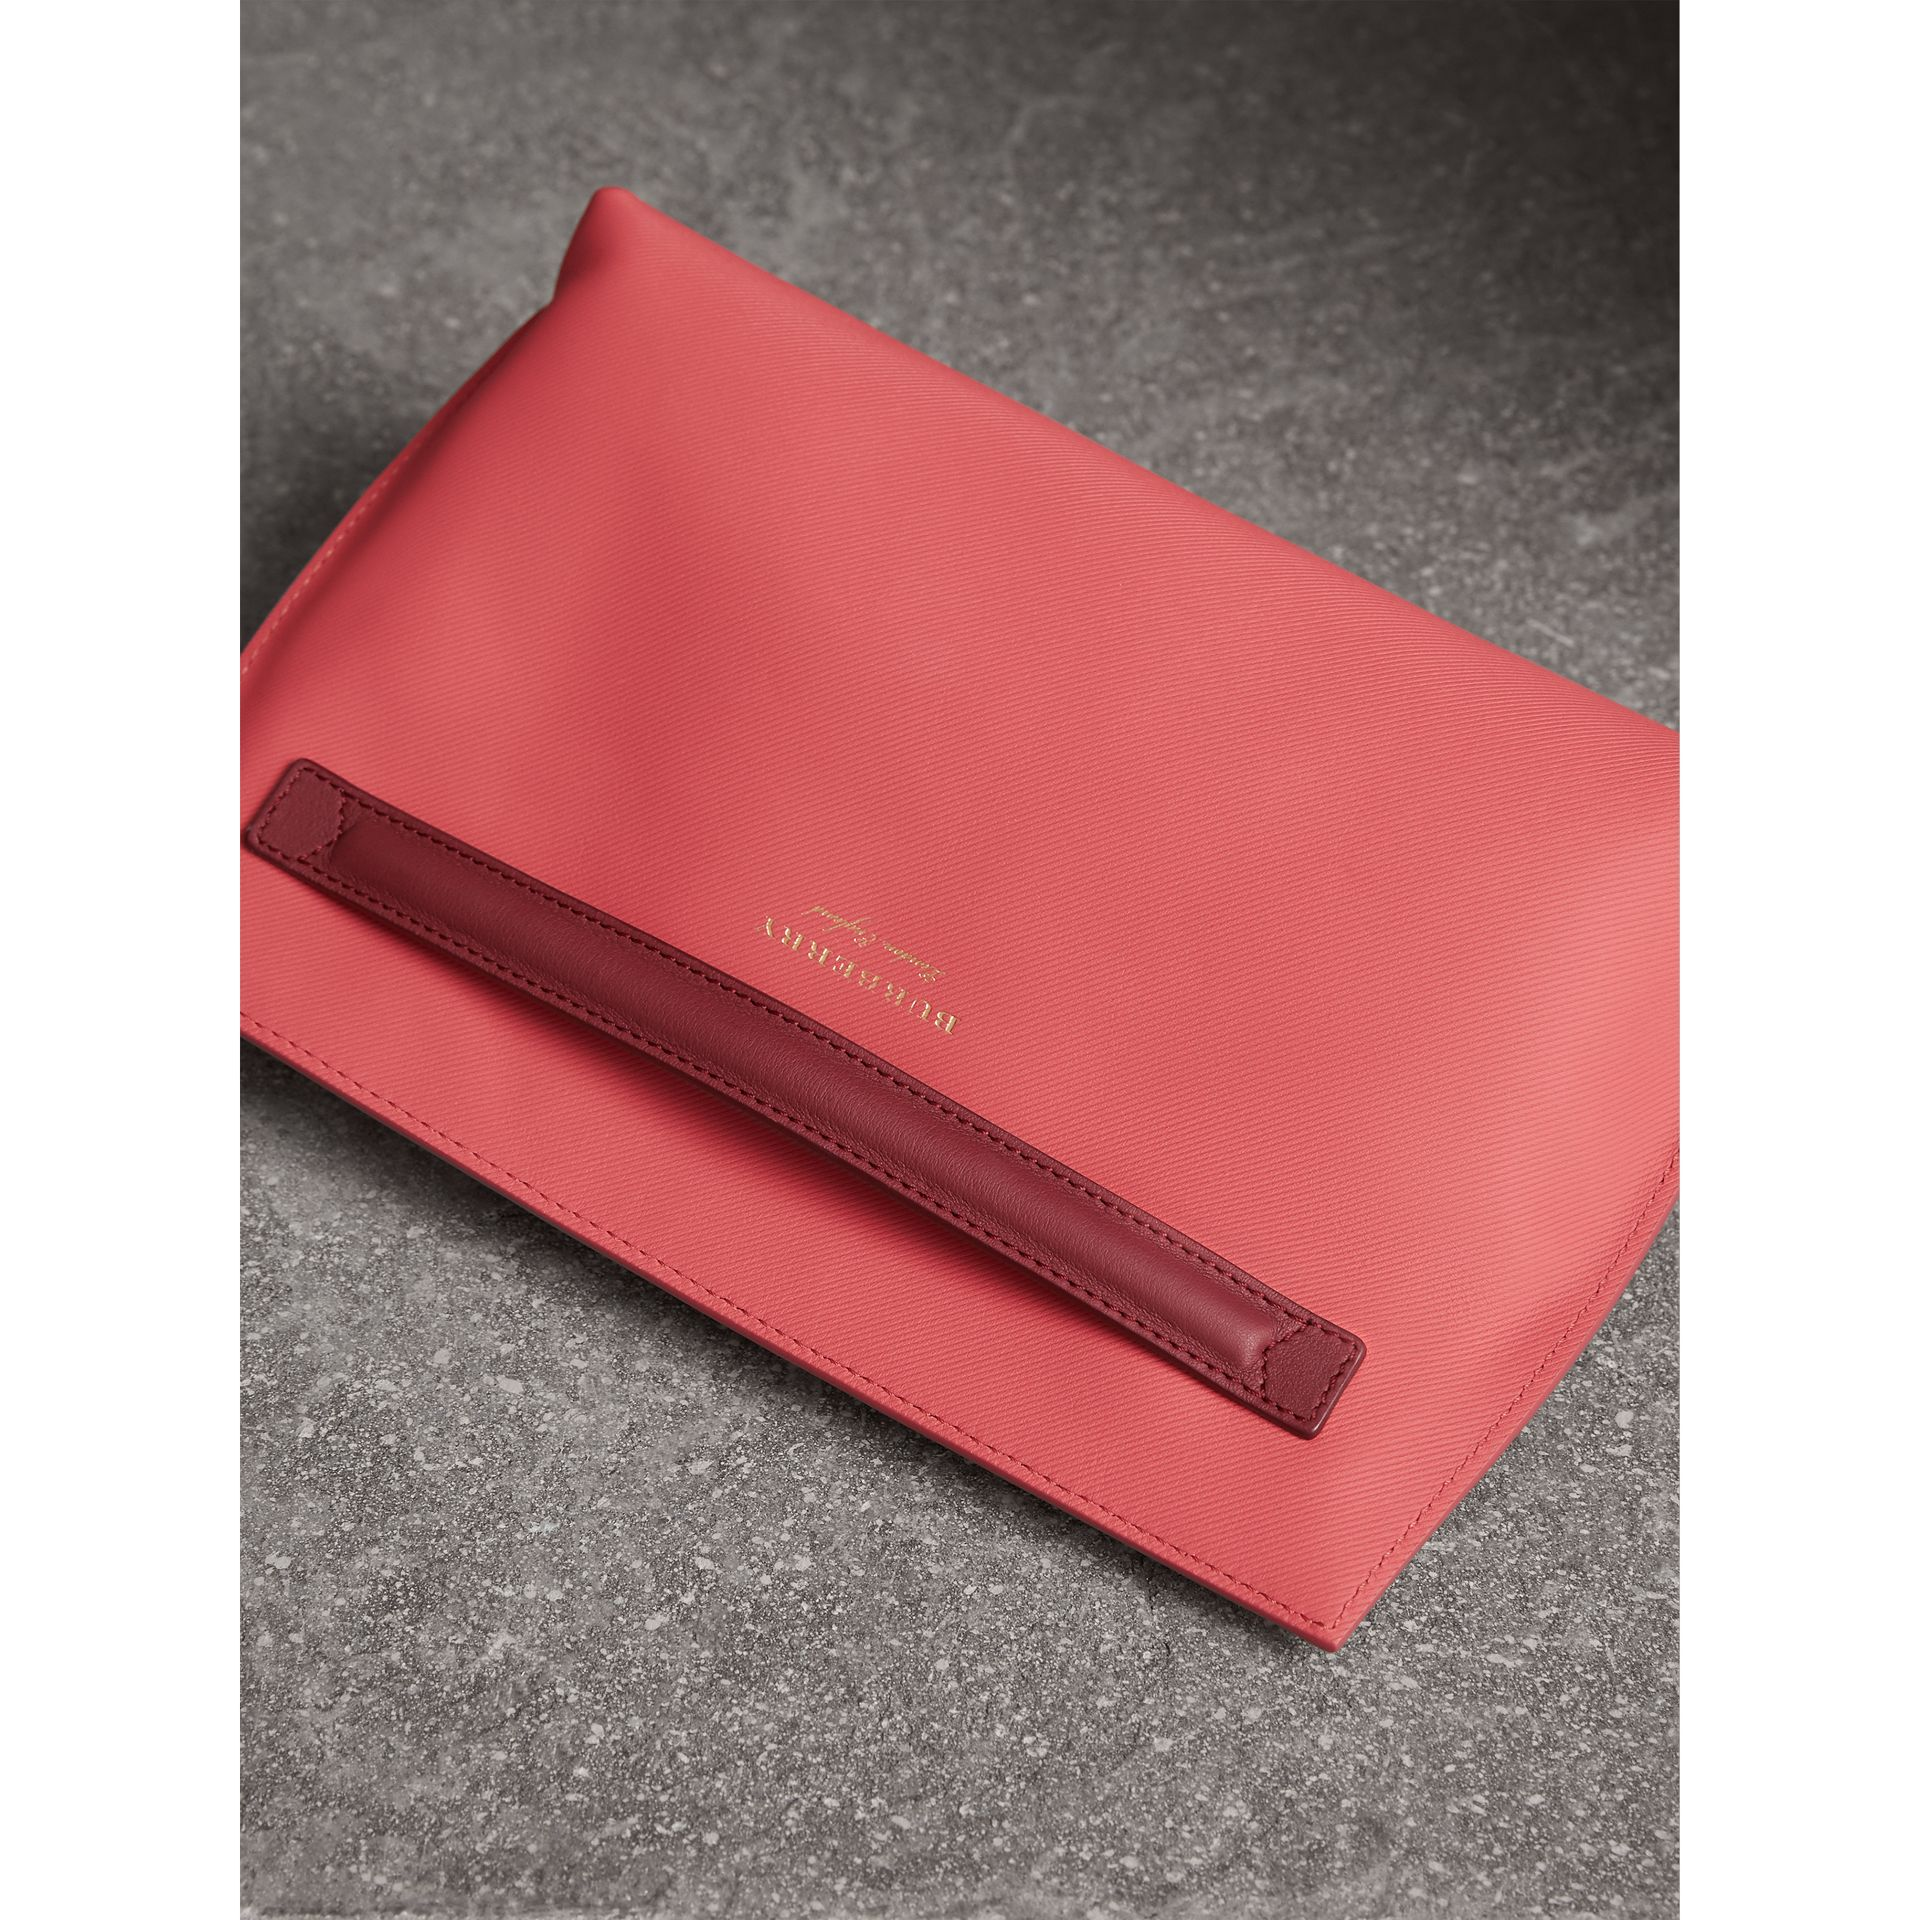 Two-tone Trench Leather Wristlet Pouch in Blossom Pink/antique Red - Women | Burberry United Kingdom - gallery image 5